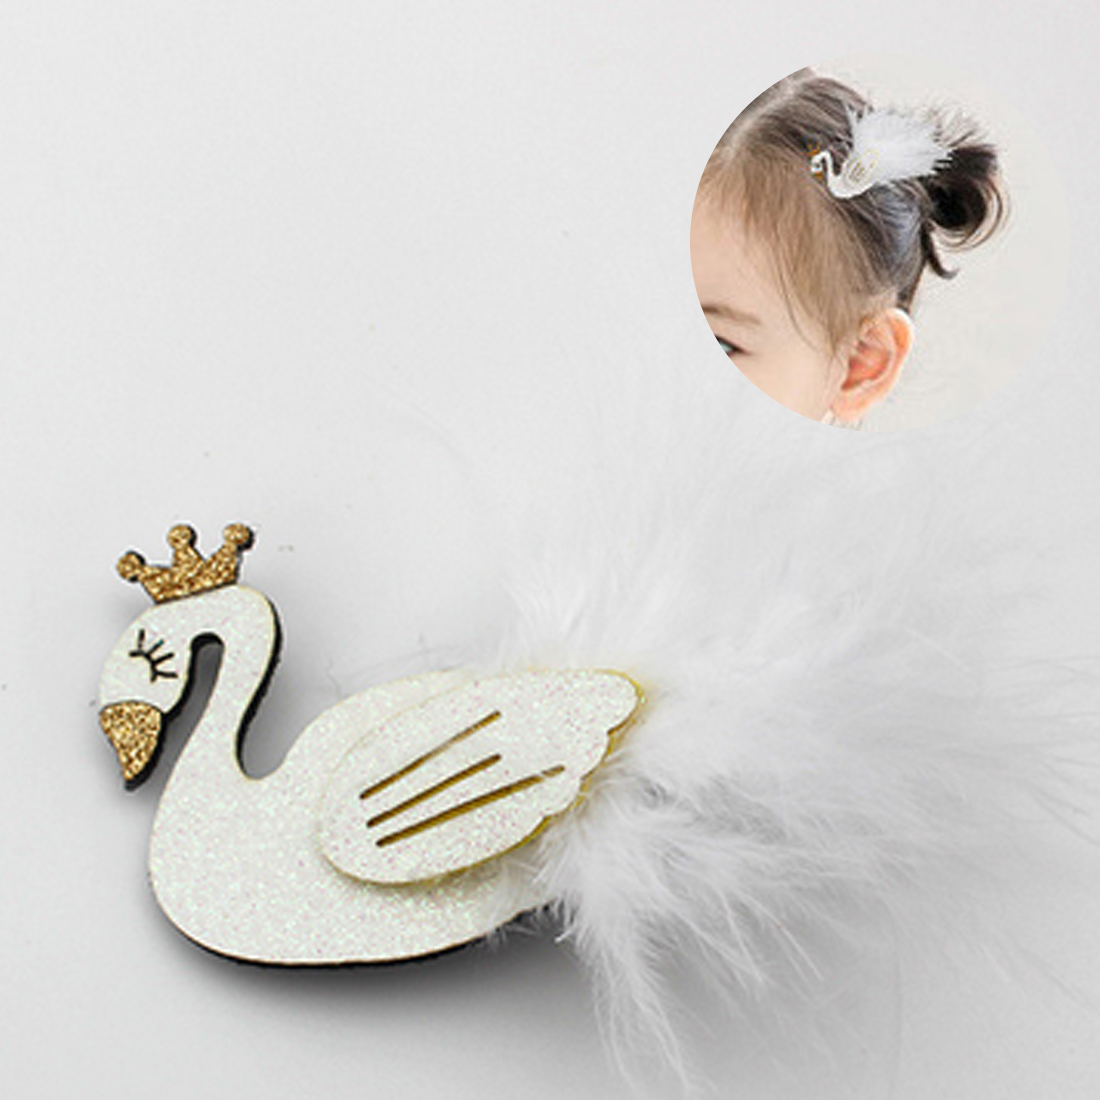 Cute Cartoon Black And White Swan Baby Hairpins kids Hair Clips Princess Barrette Girls Hair Accessories Children Headwear baby cute style children accessories hairpins rabbit fur ear kids girls barrette lovely hair clip